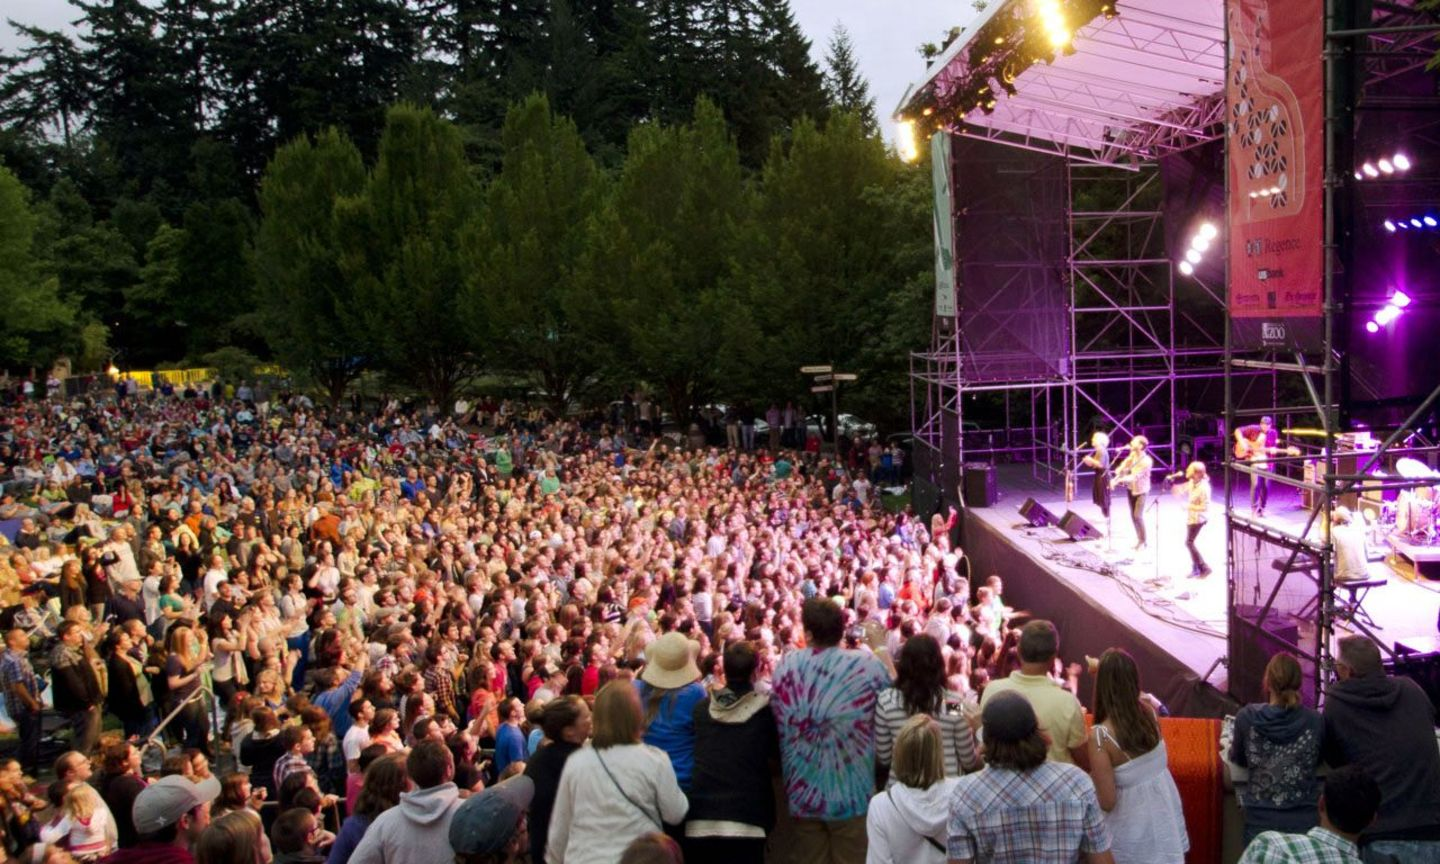 Portland Events June 2020.Oregon Zoo Summer Concerts Portland